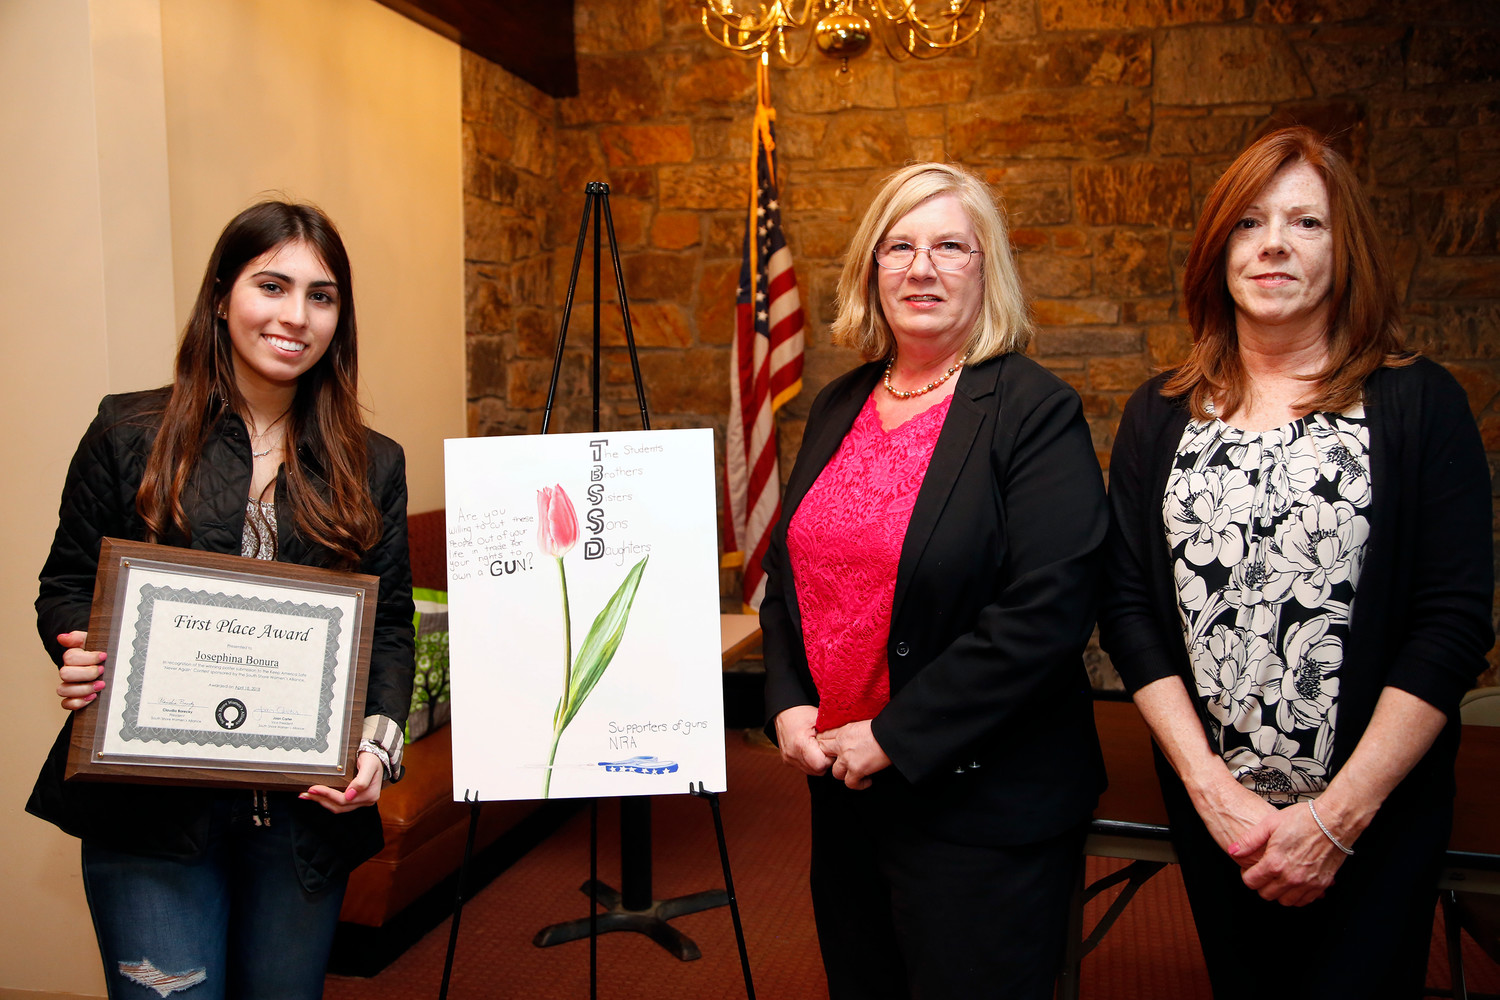 Josephine Bonura from Kennedy High School, won first place for her poster. She received her award from SSWA President Claudia Borecky, center, and Vice President Joan Carter.